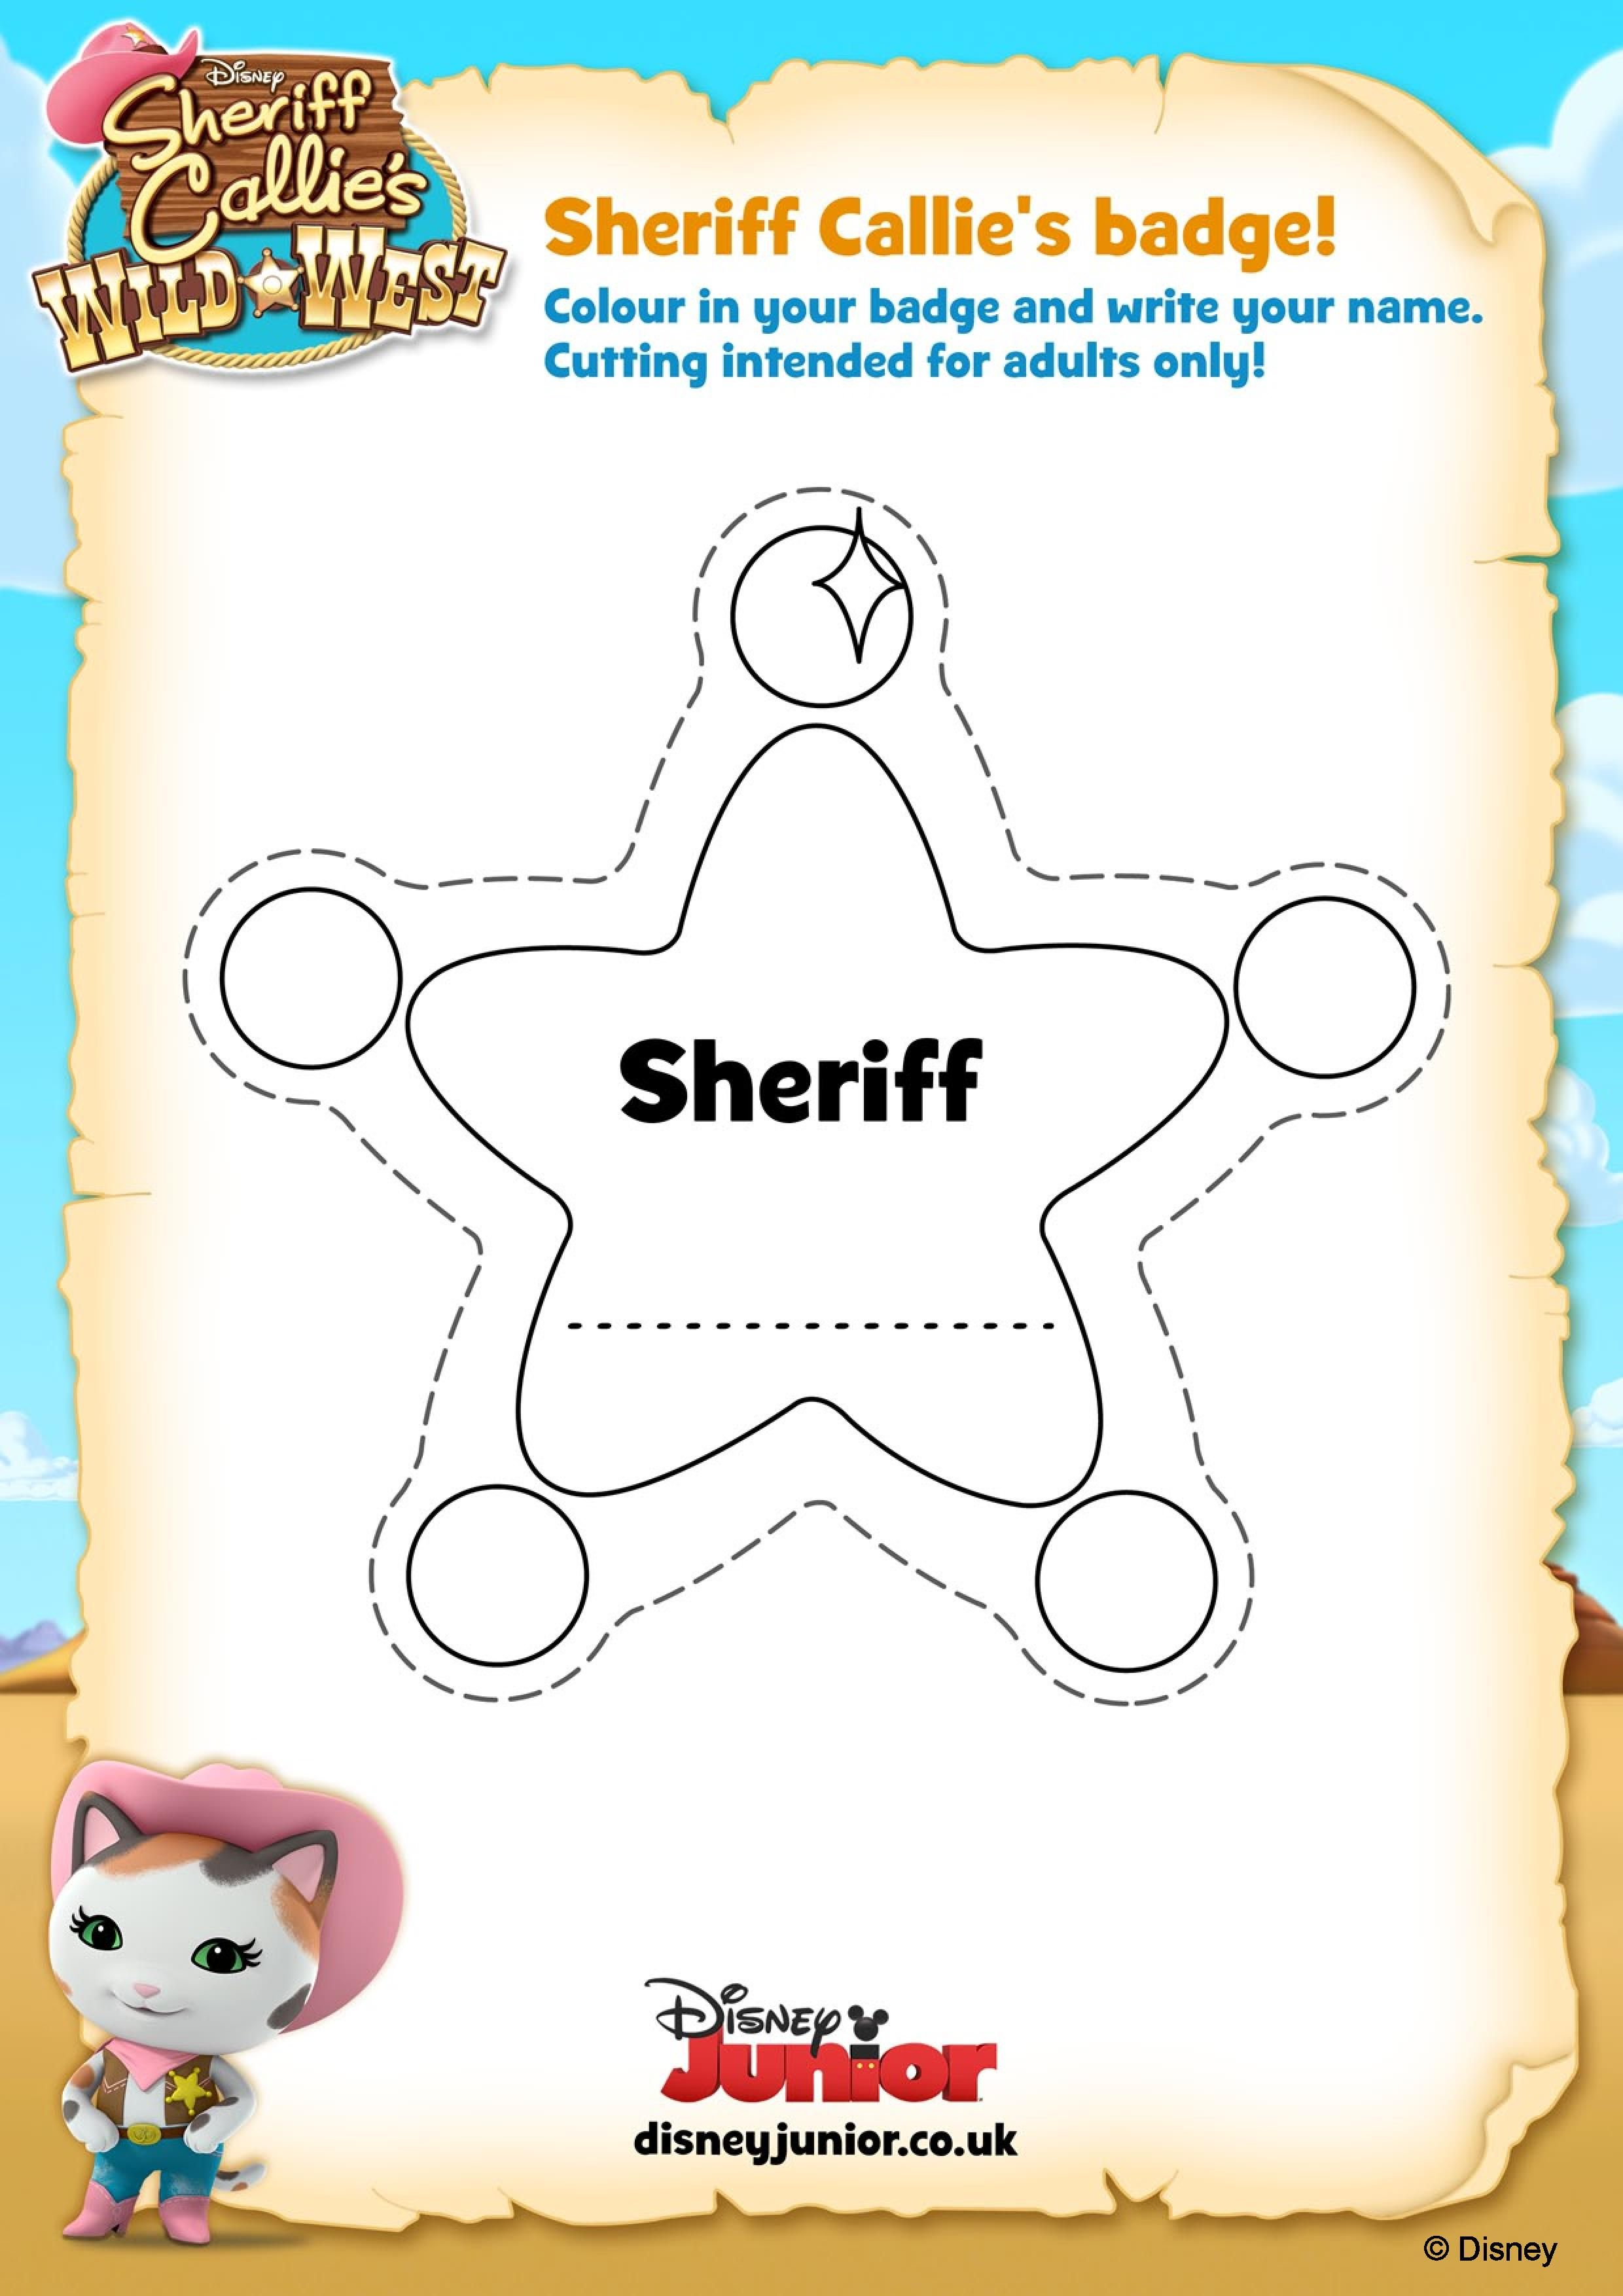 sheriff callie coloring pages - Google Search | Brinny ideas ...